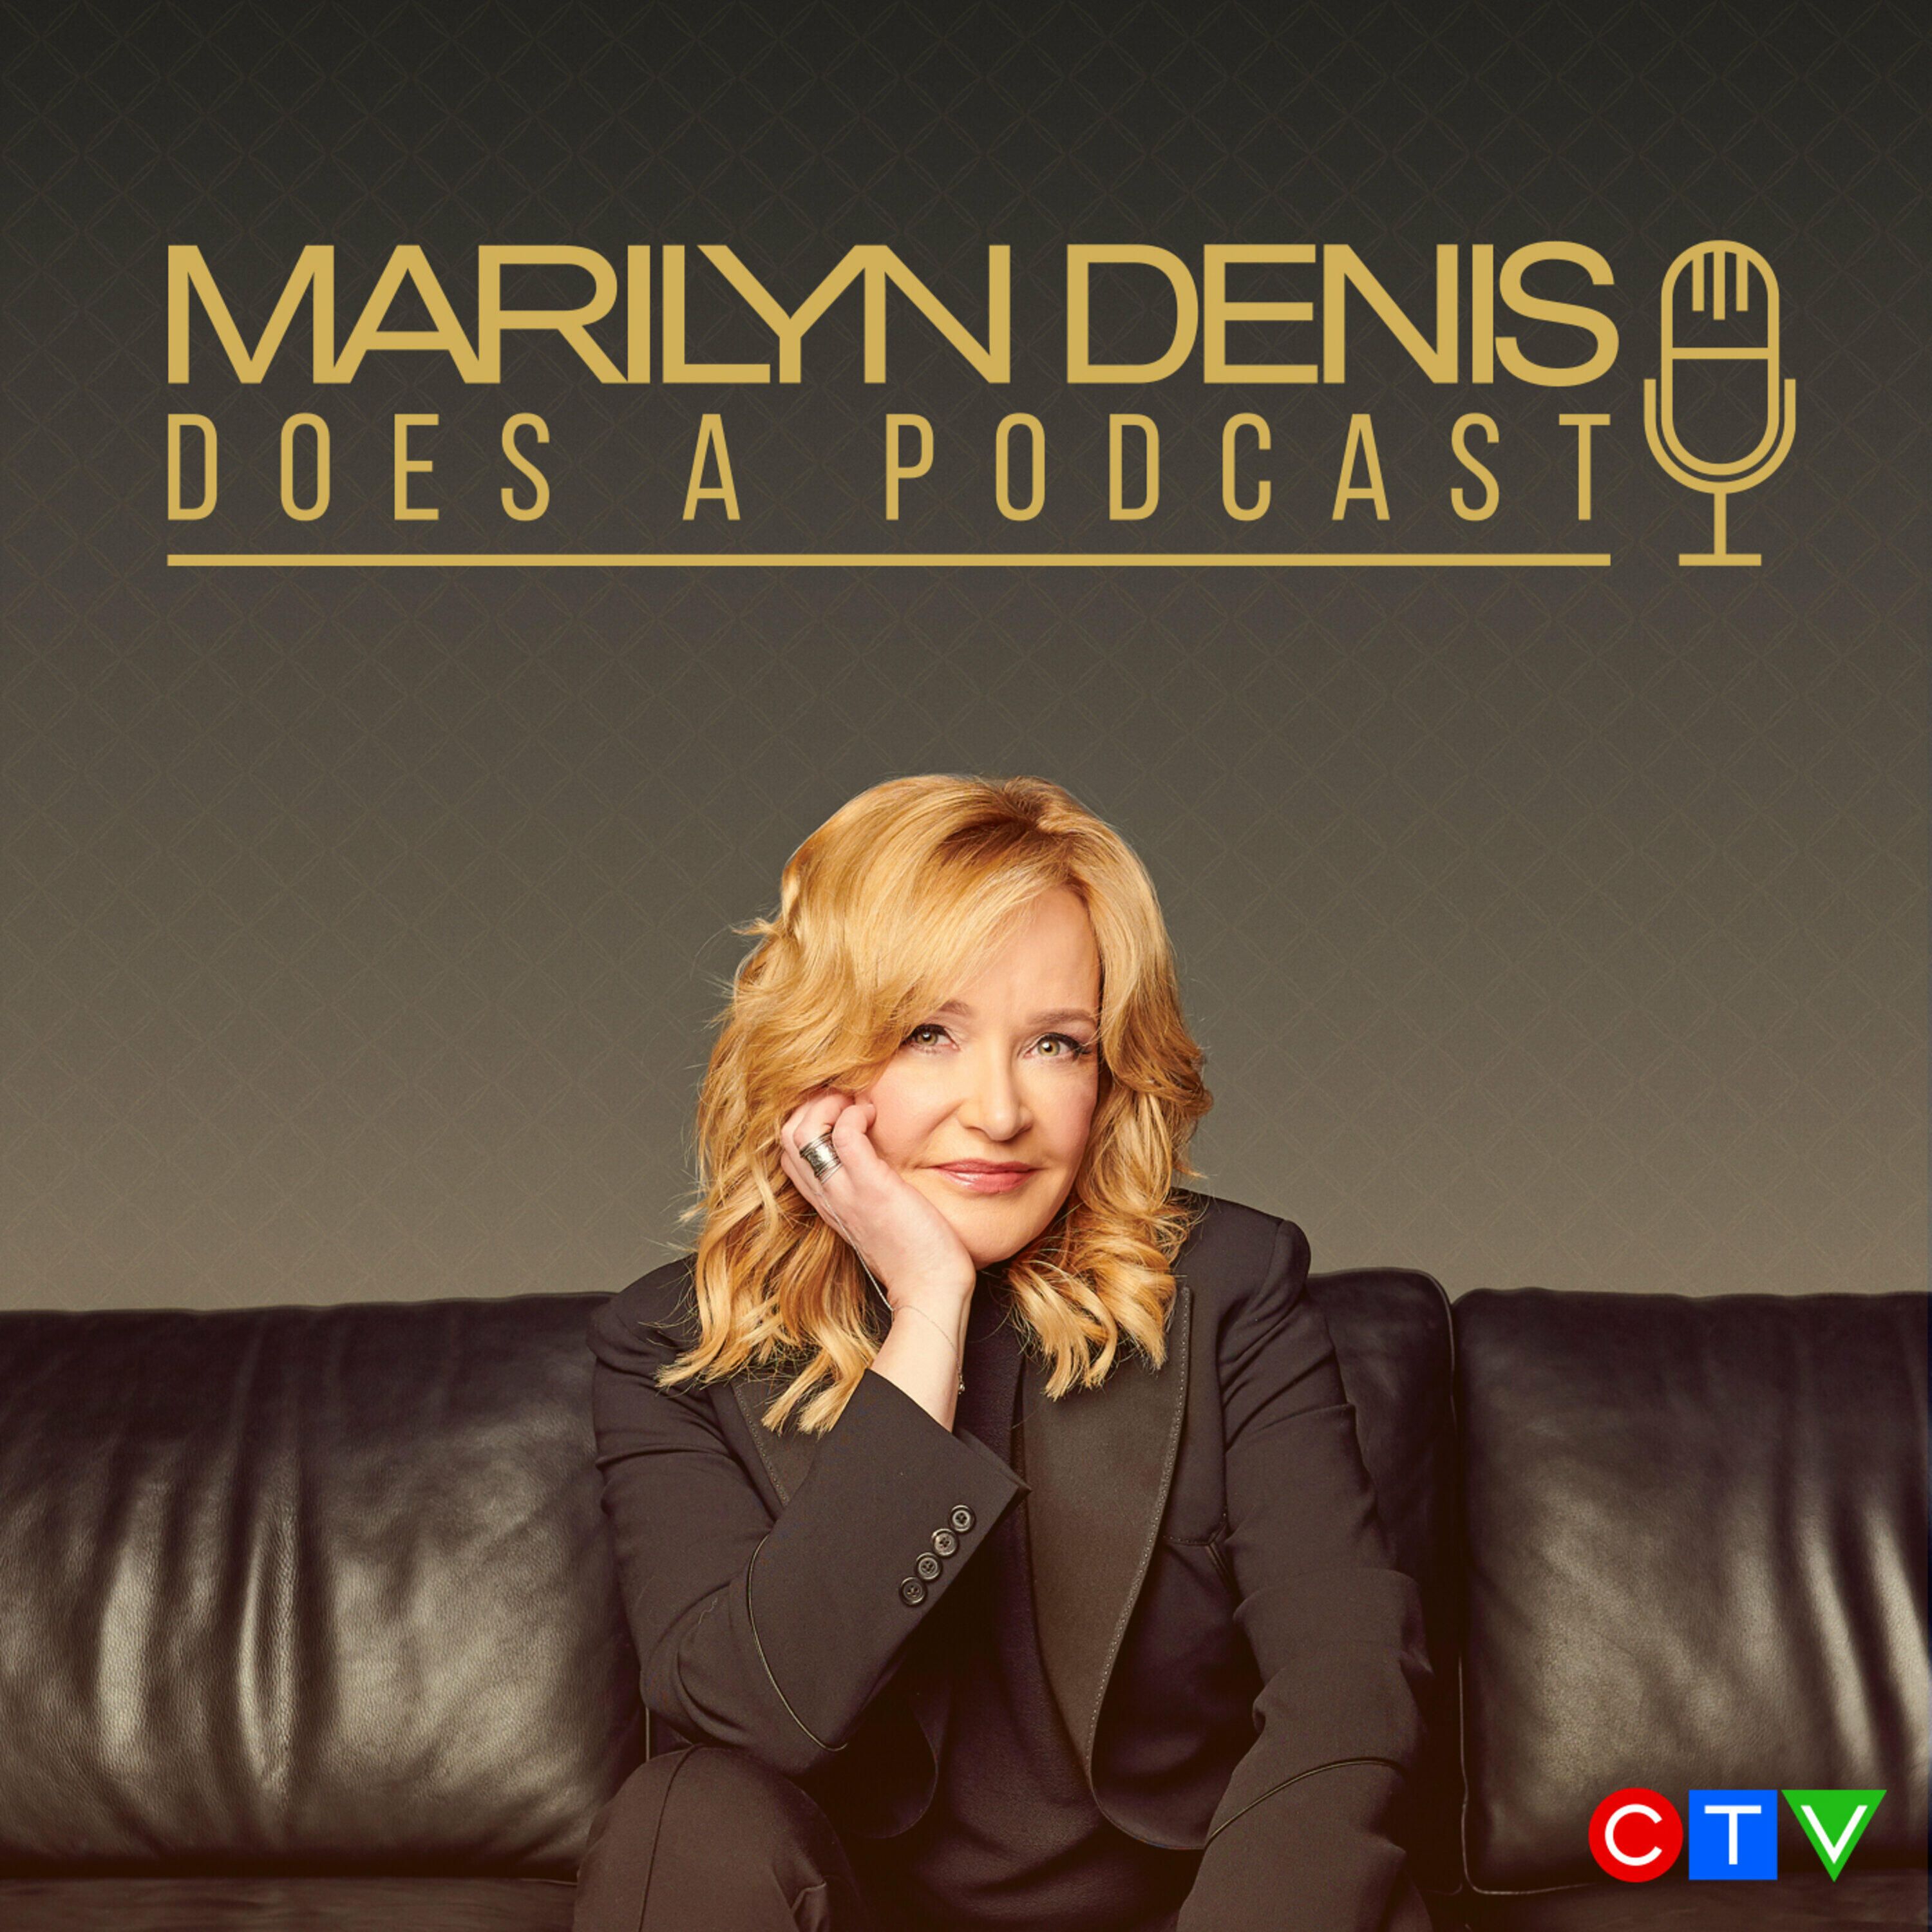 Marilyn Denis Does a Podcast